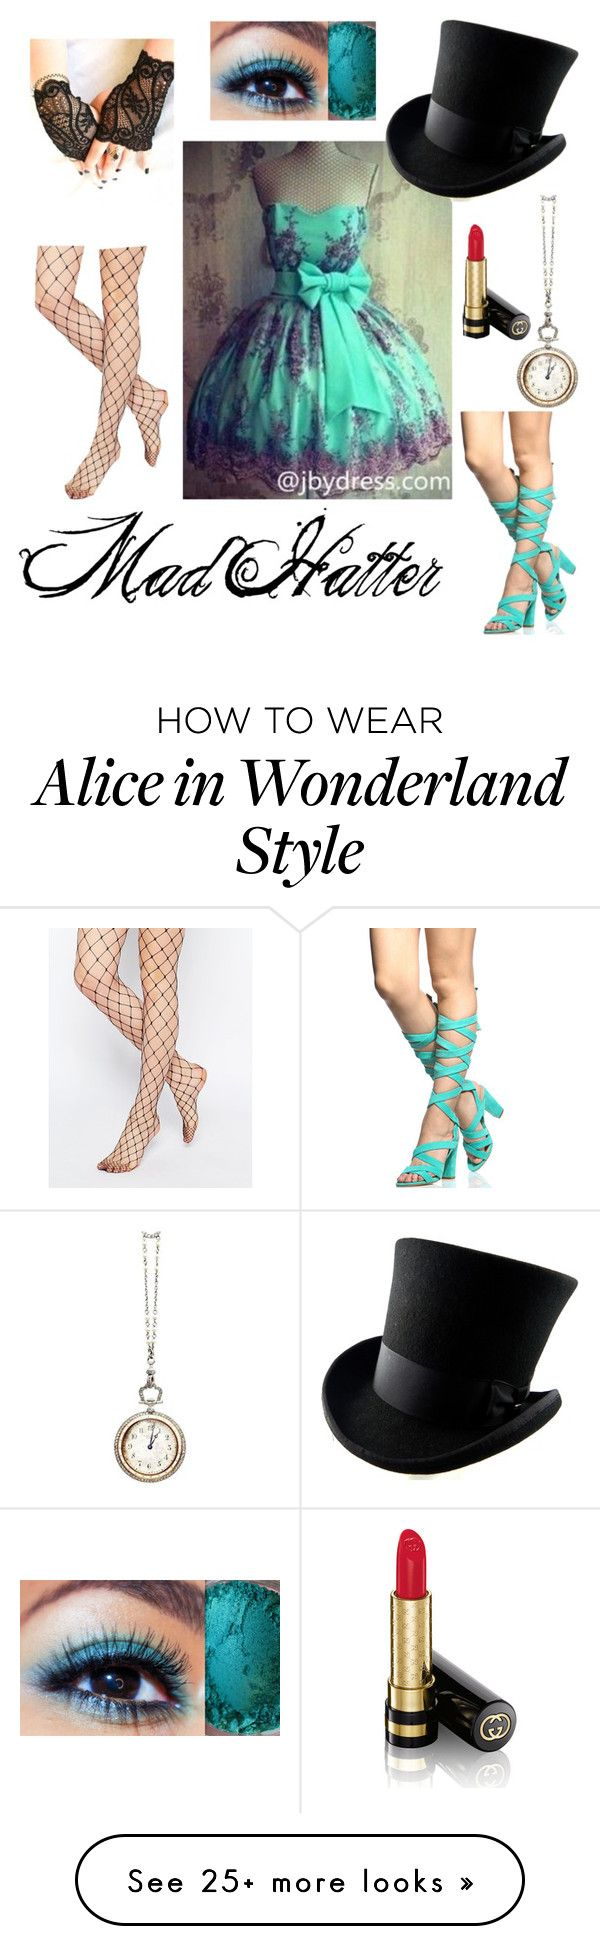 """""""Alice in Wonderland: Mad Hatter"""" by hopelessromance69 on Polyvore featuring ASOS, Cartier and Gucci"""